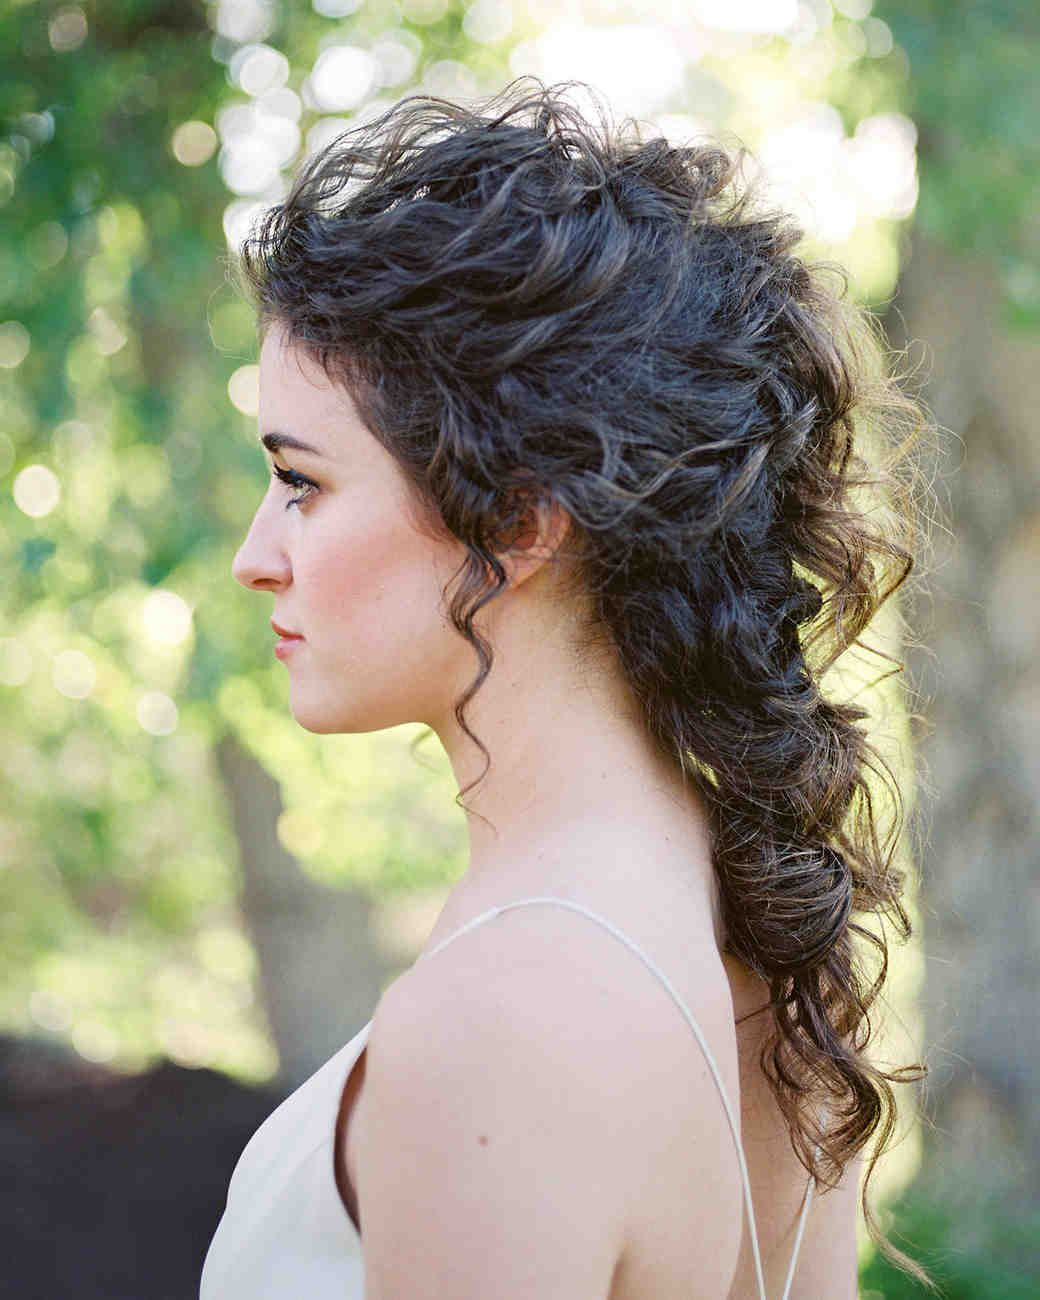 Modern Wedding Hairstyles For The Cool Contemporary Bride: The Best Hairstyles For Every Wedding Dress Neckline